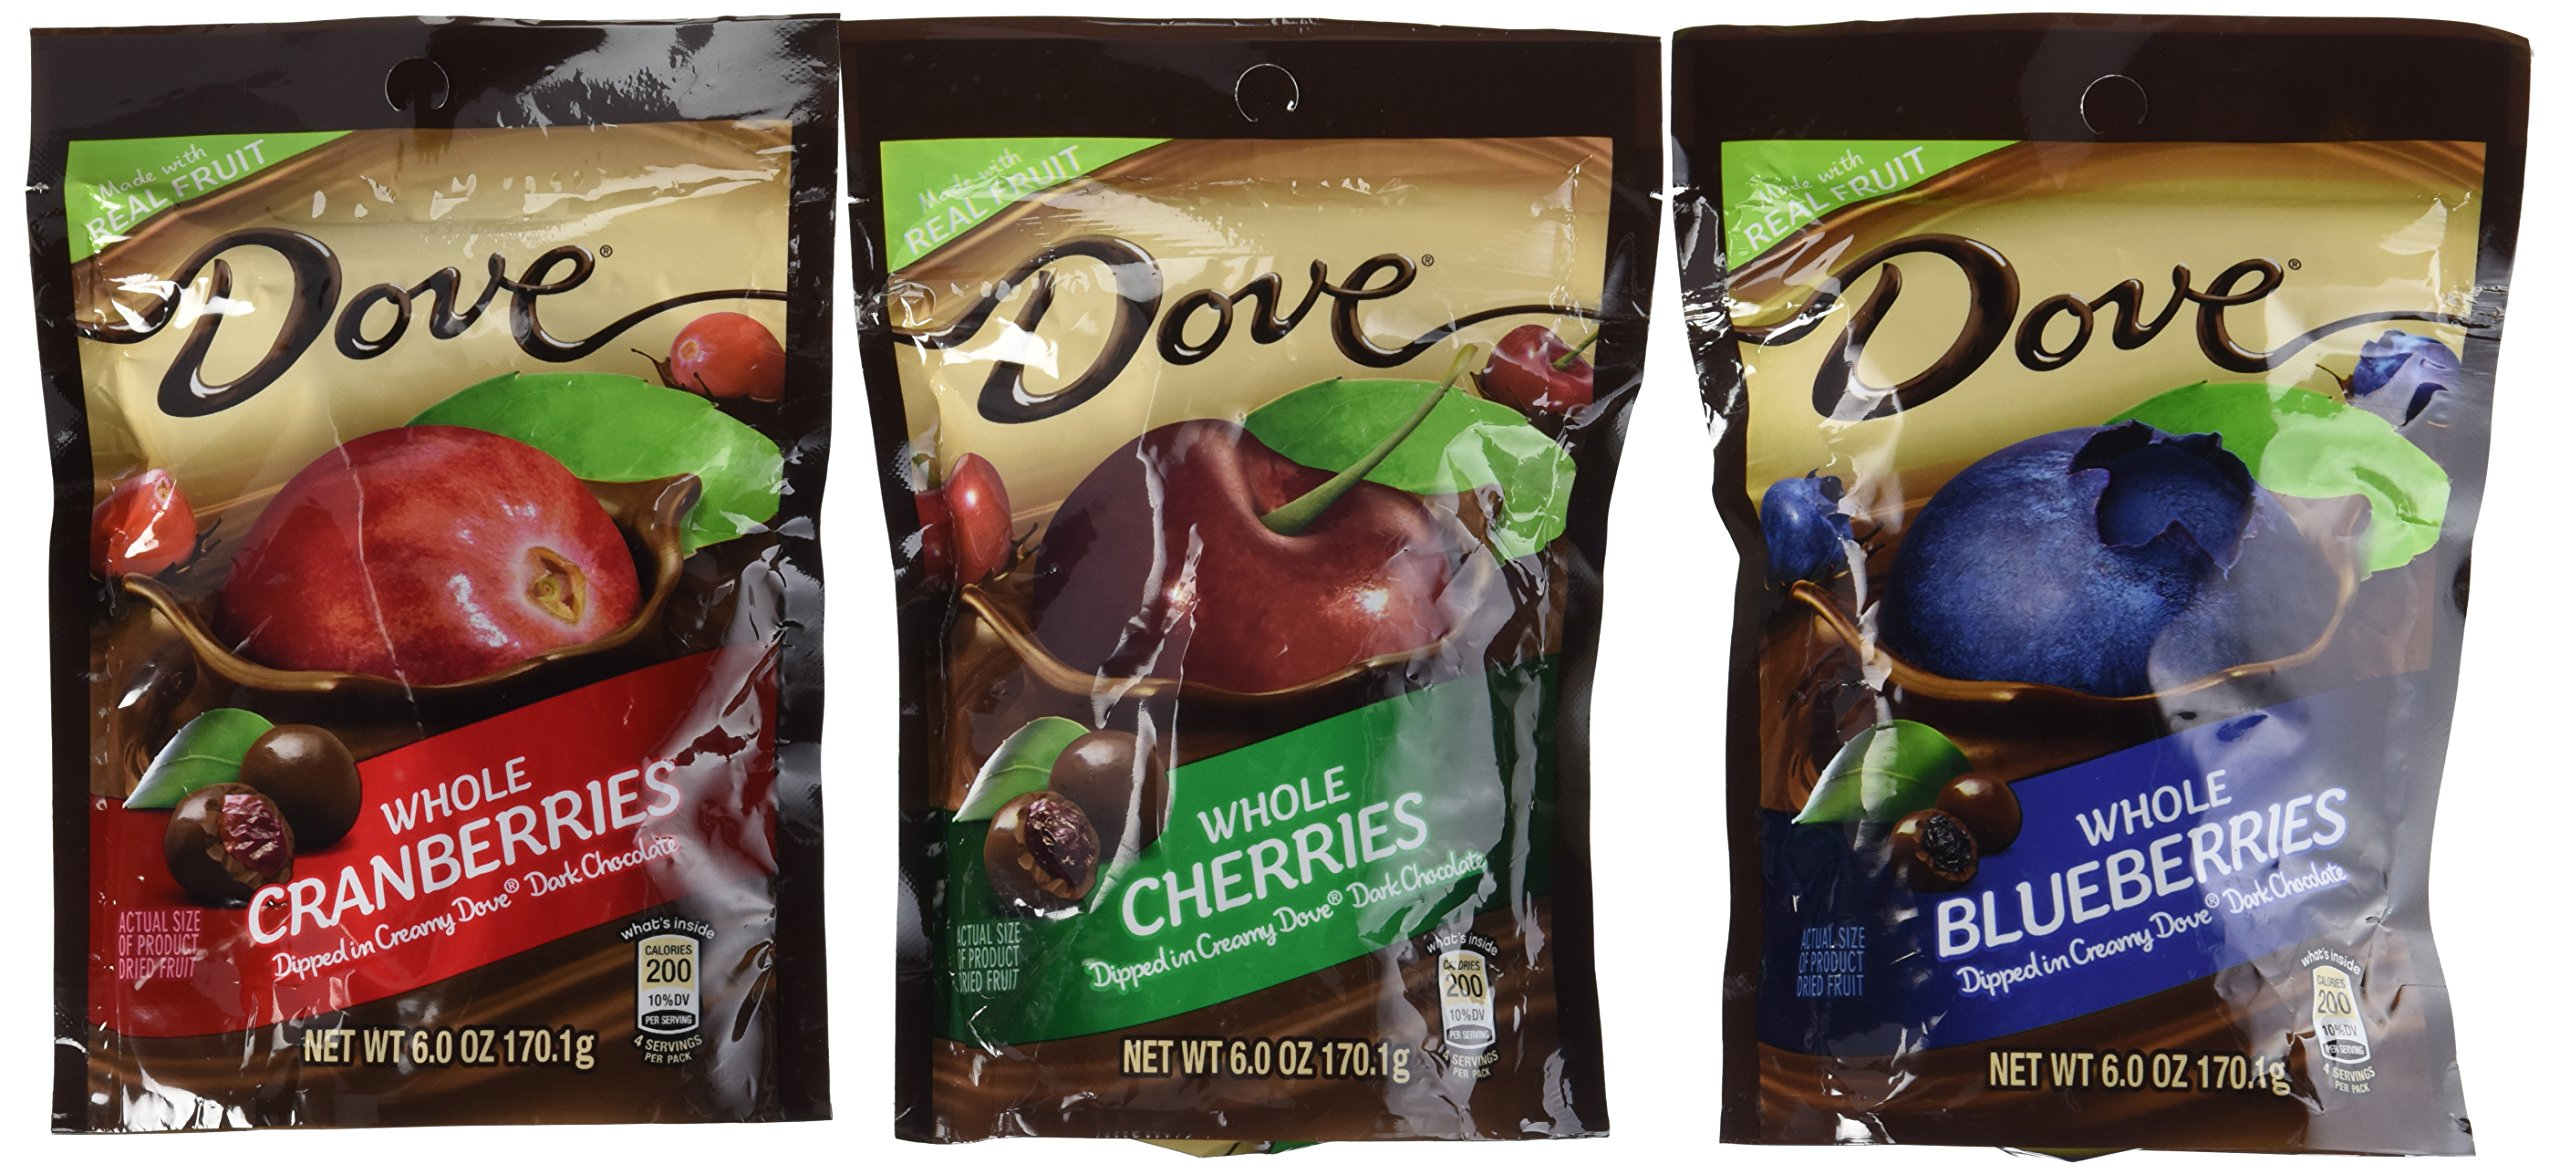 Dove Whole Cherries, Whole Blueberries and Whole Cranberries Dipped in Creamy Dove Dark Chocolate 6 Oz (Pack of 3) by Dove